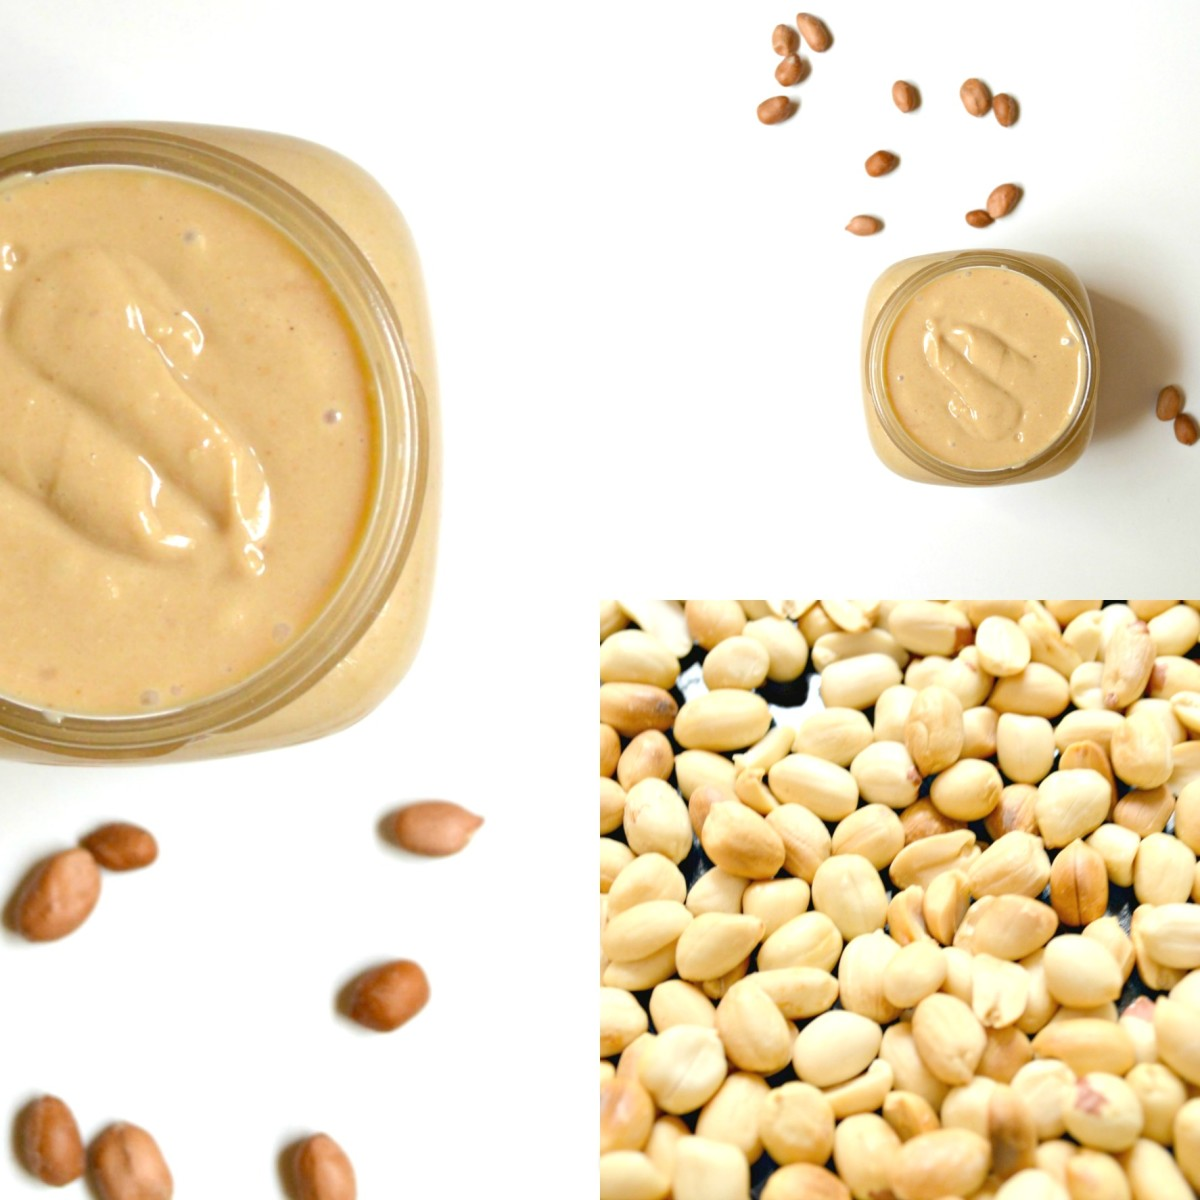 It's easy to make peanut butter at home, with all natural ingredients.